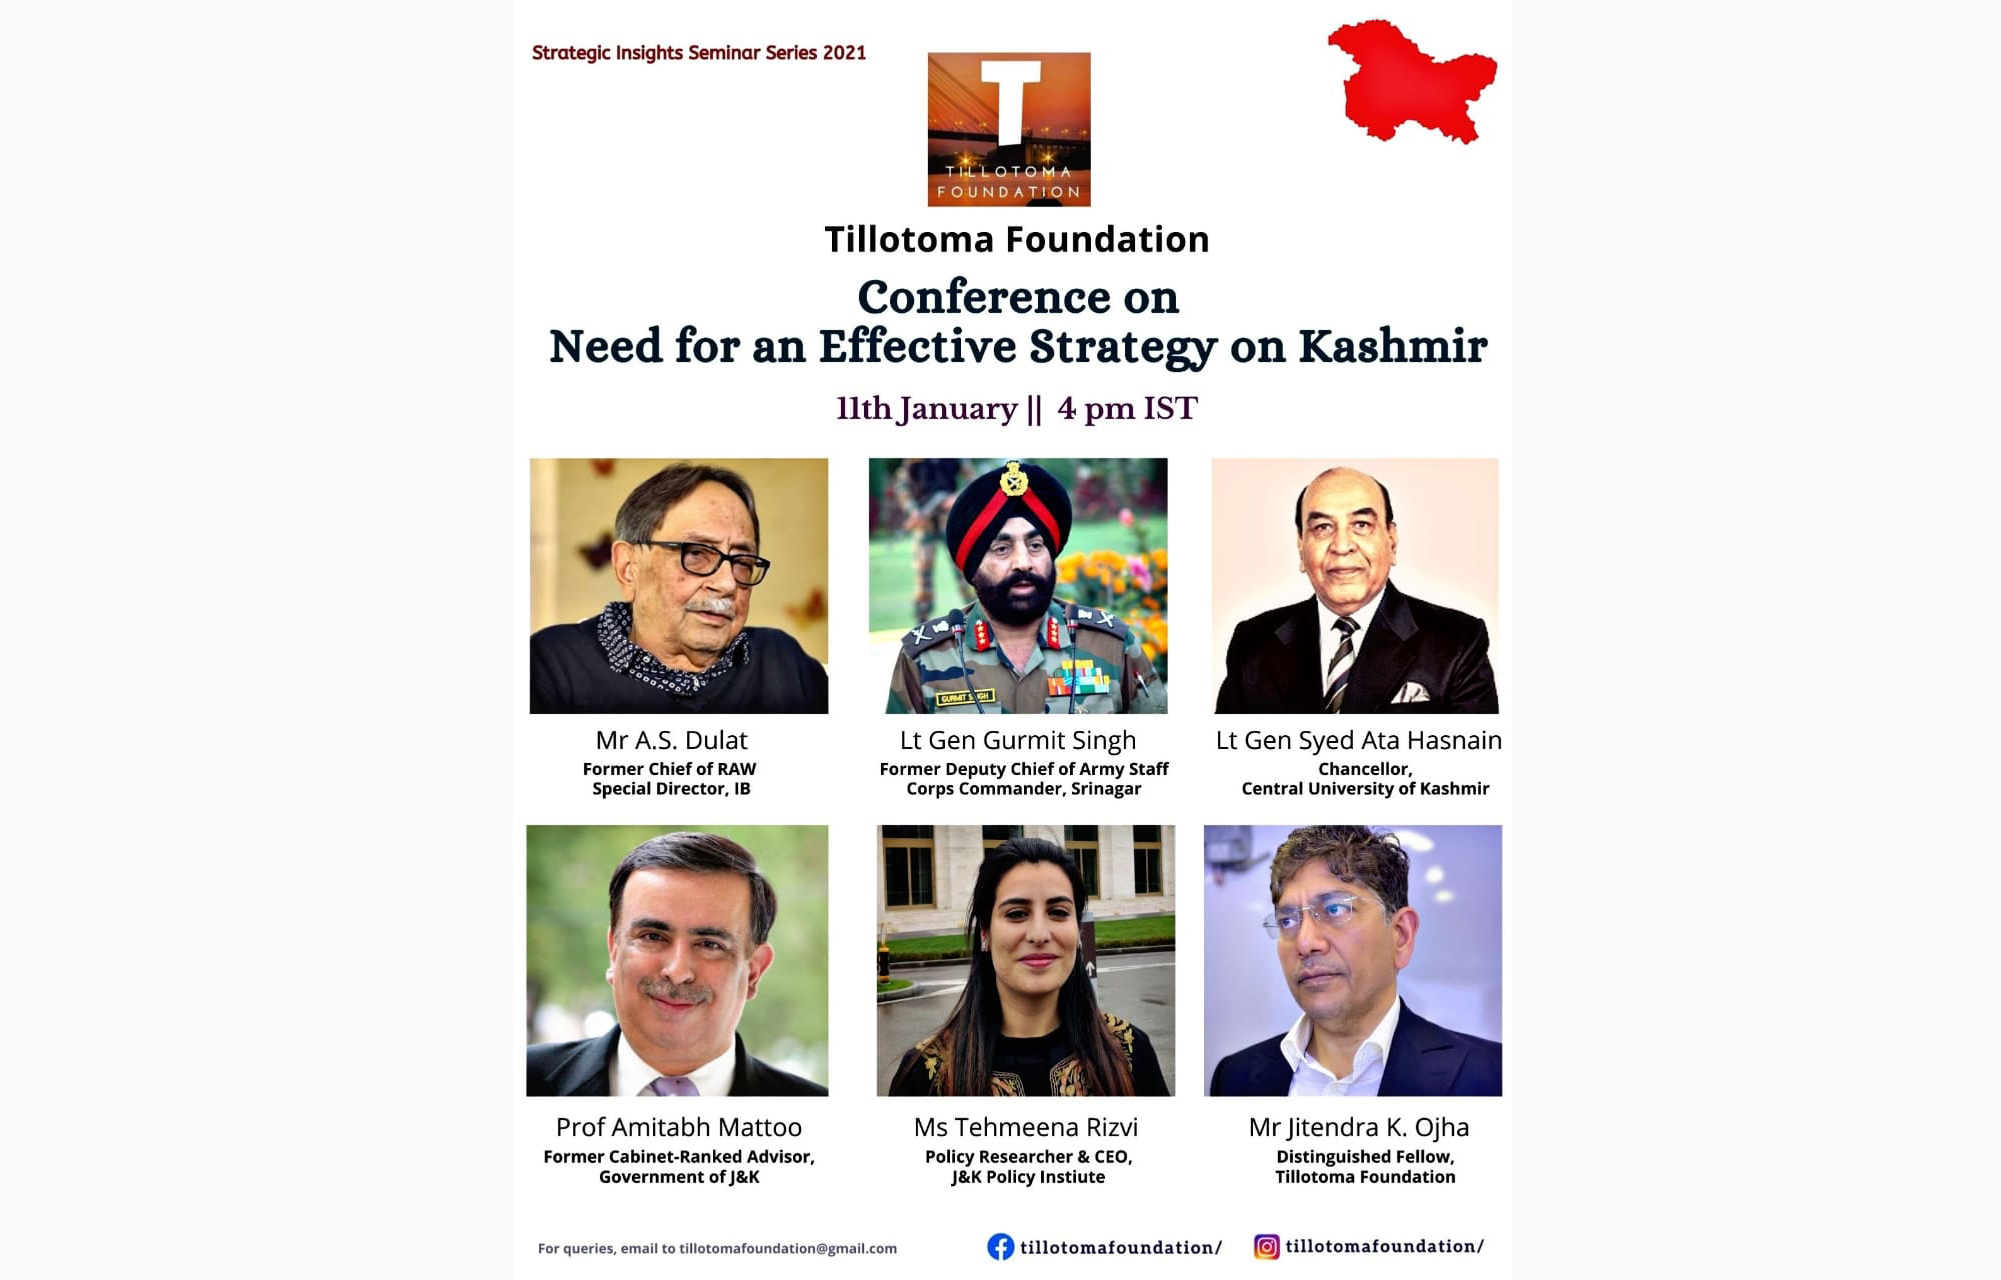 Tillotoma Foundation organizes a Virtual Seminar on 'Need for an Effective Strategy' on Kashmir